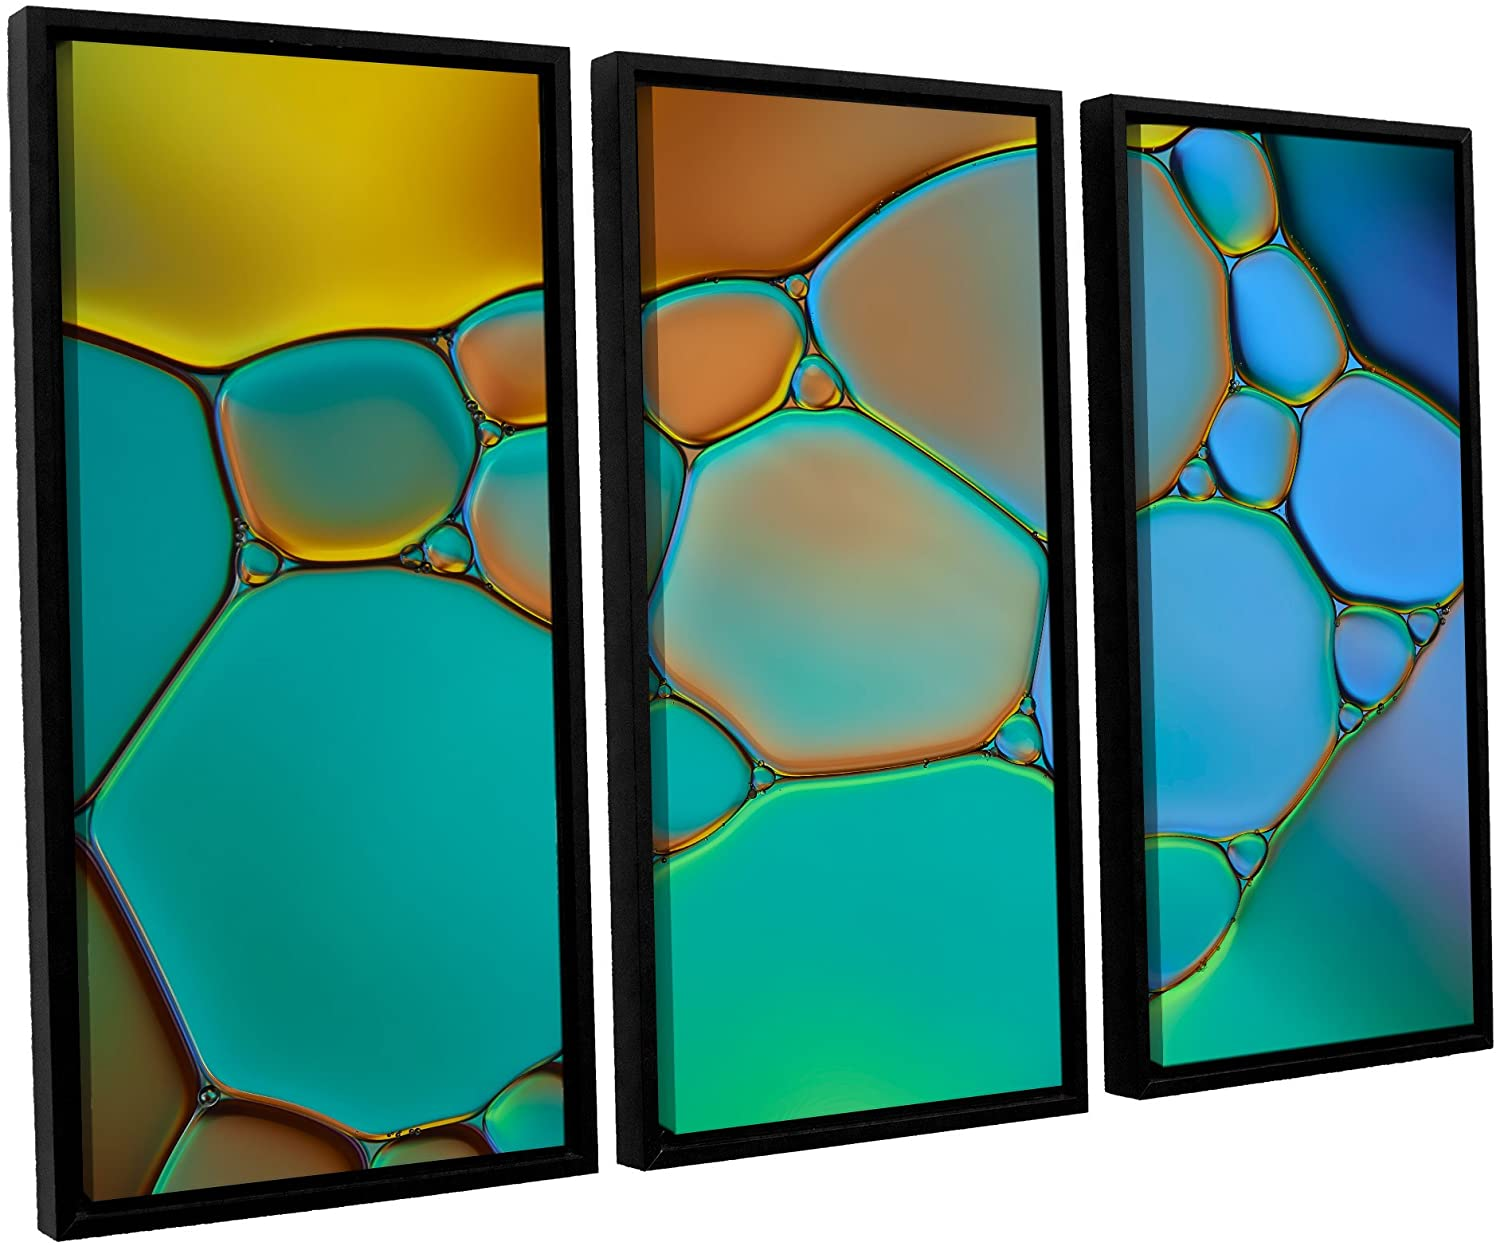 ArtWall Cora Niele's Connected II 3 Piece Floater Framed Canvas Set, 36 by 54